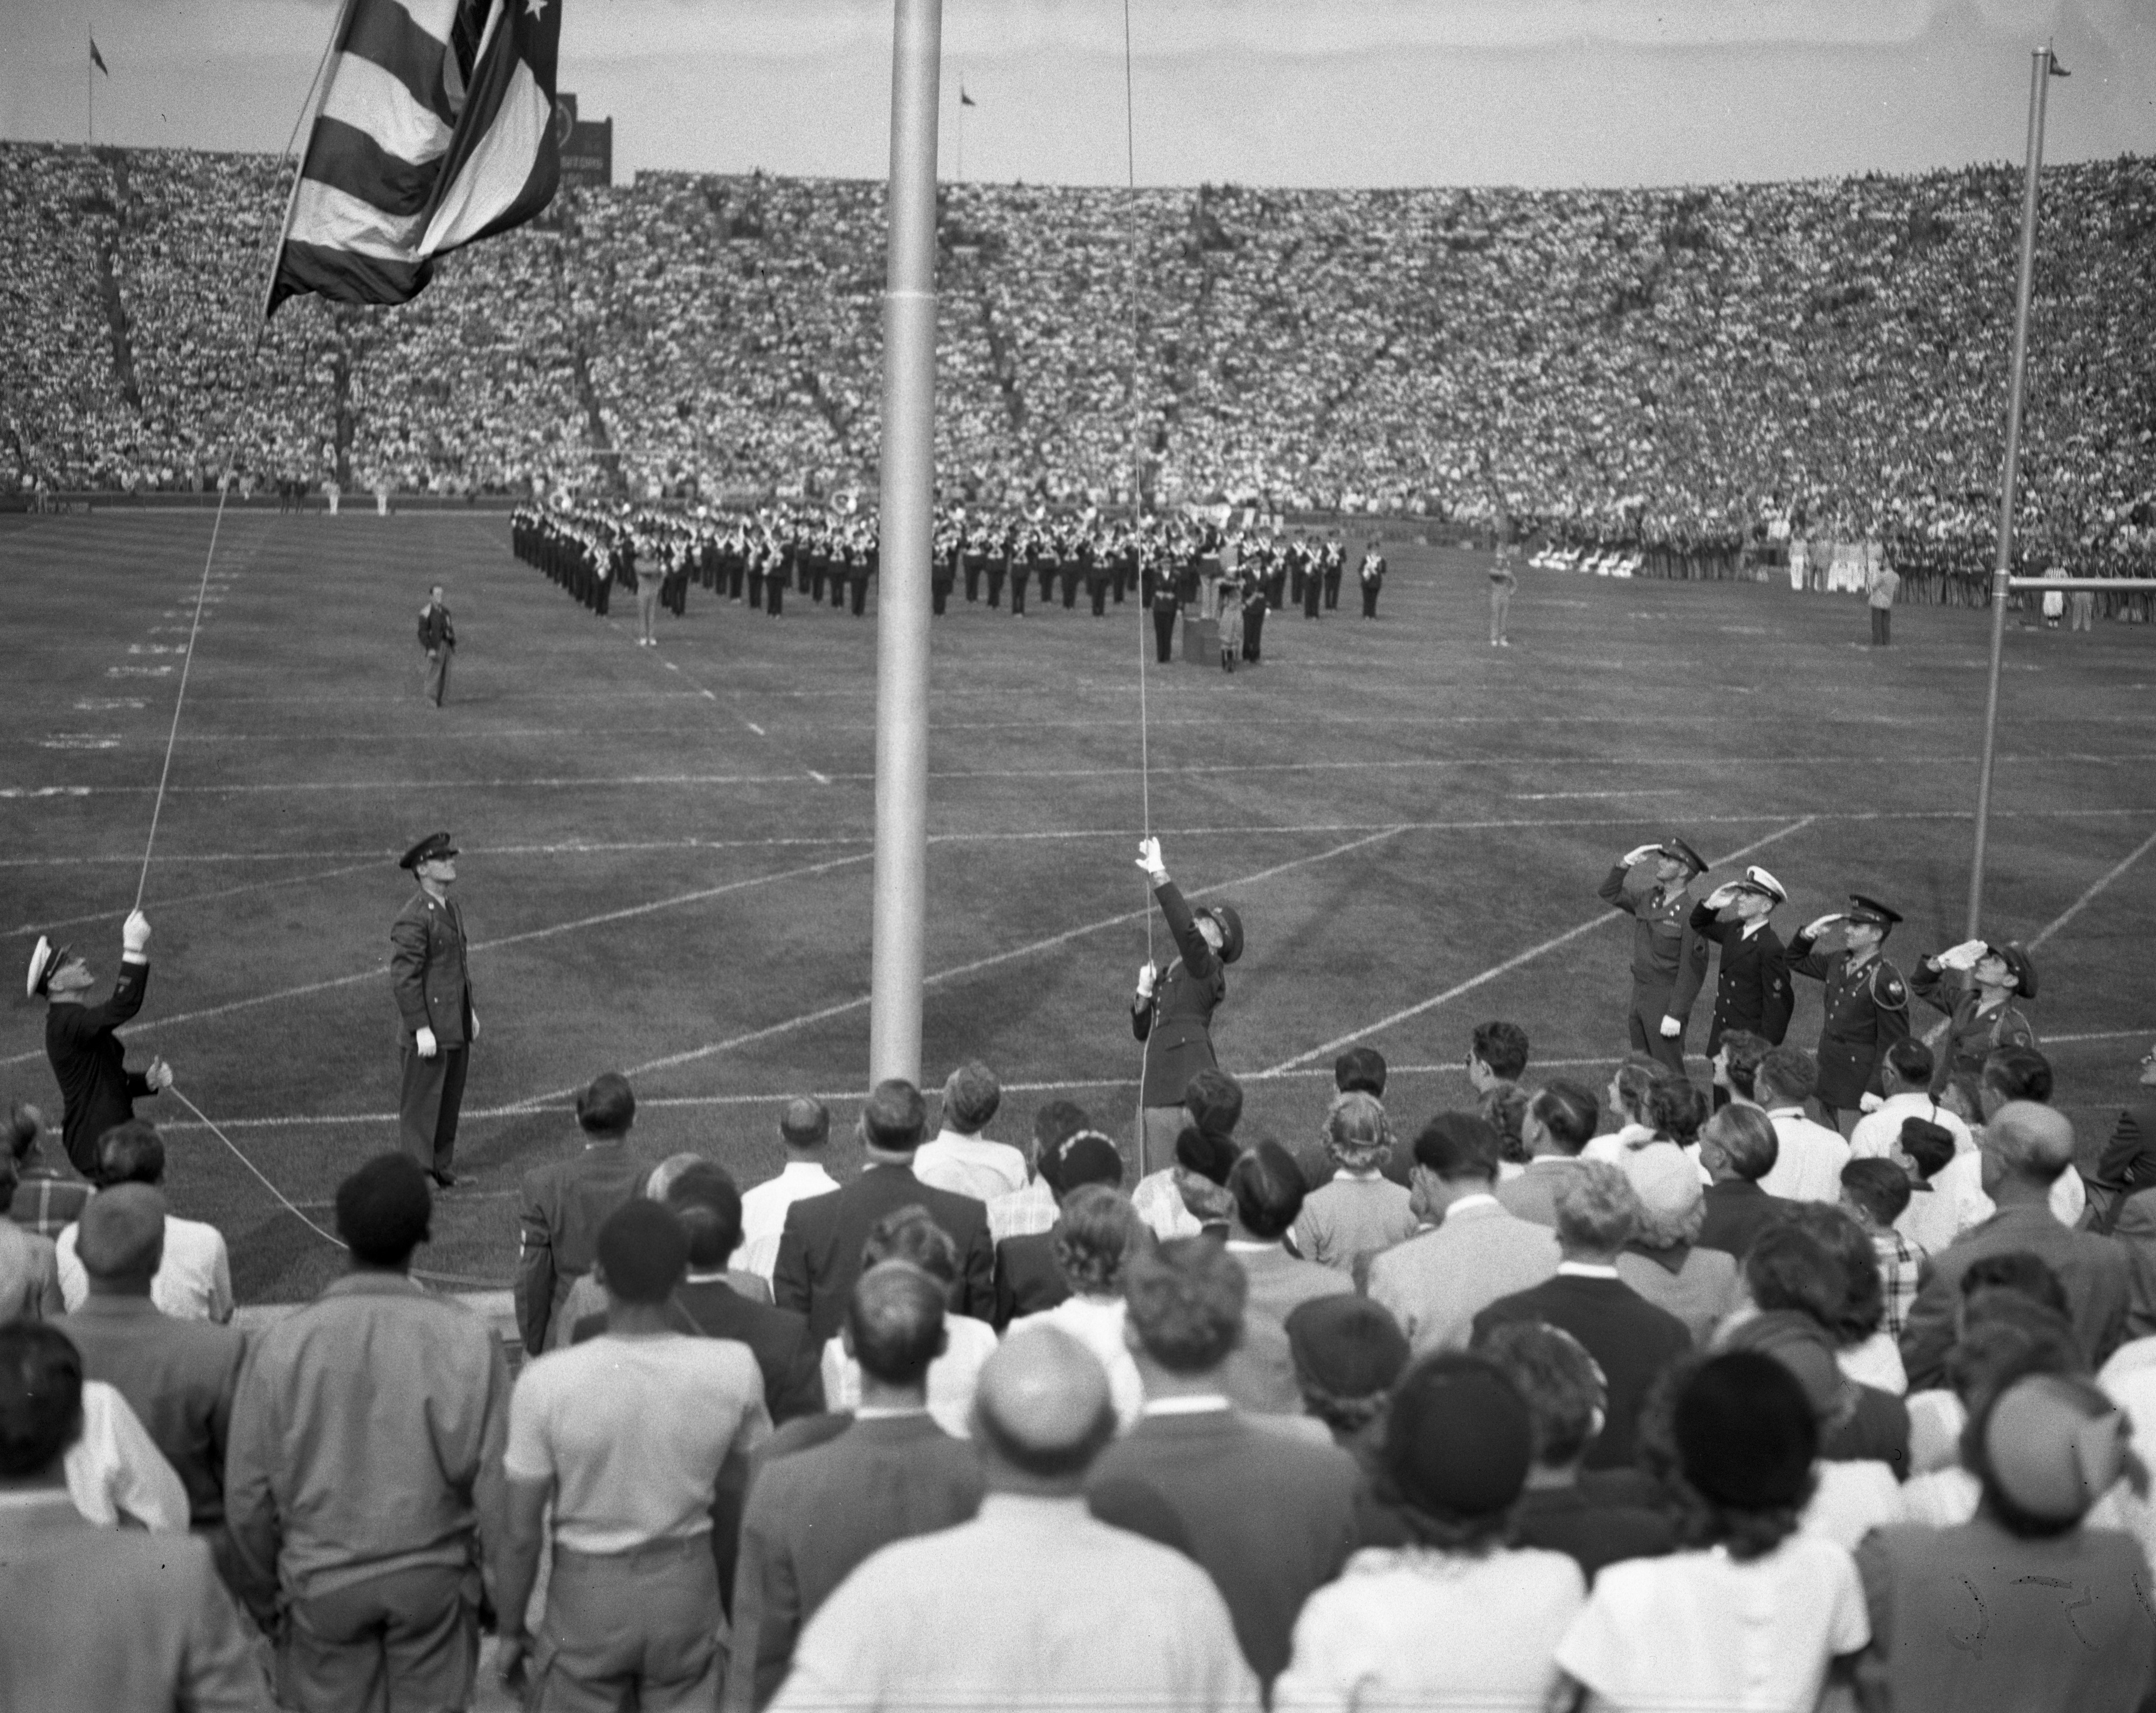 Raising the Flag at Football Game, 1950 image